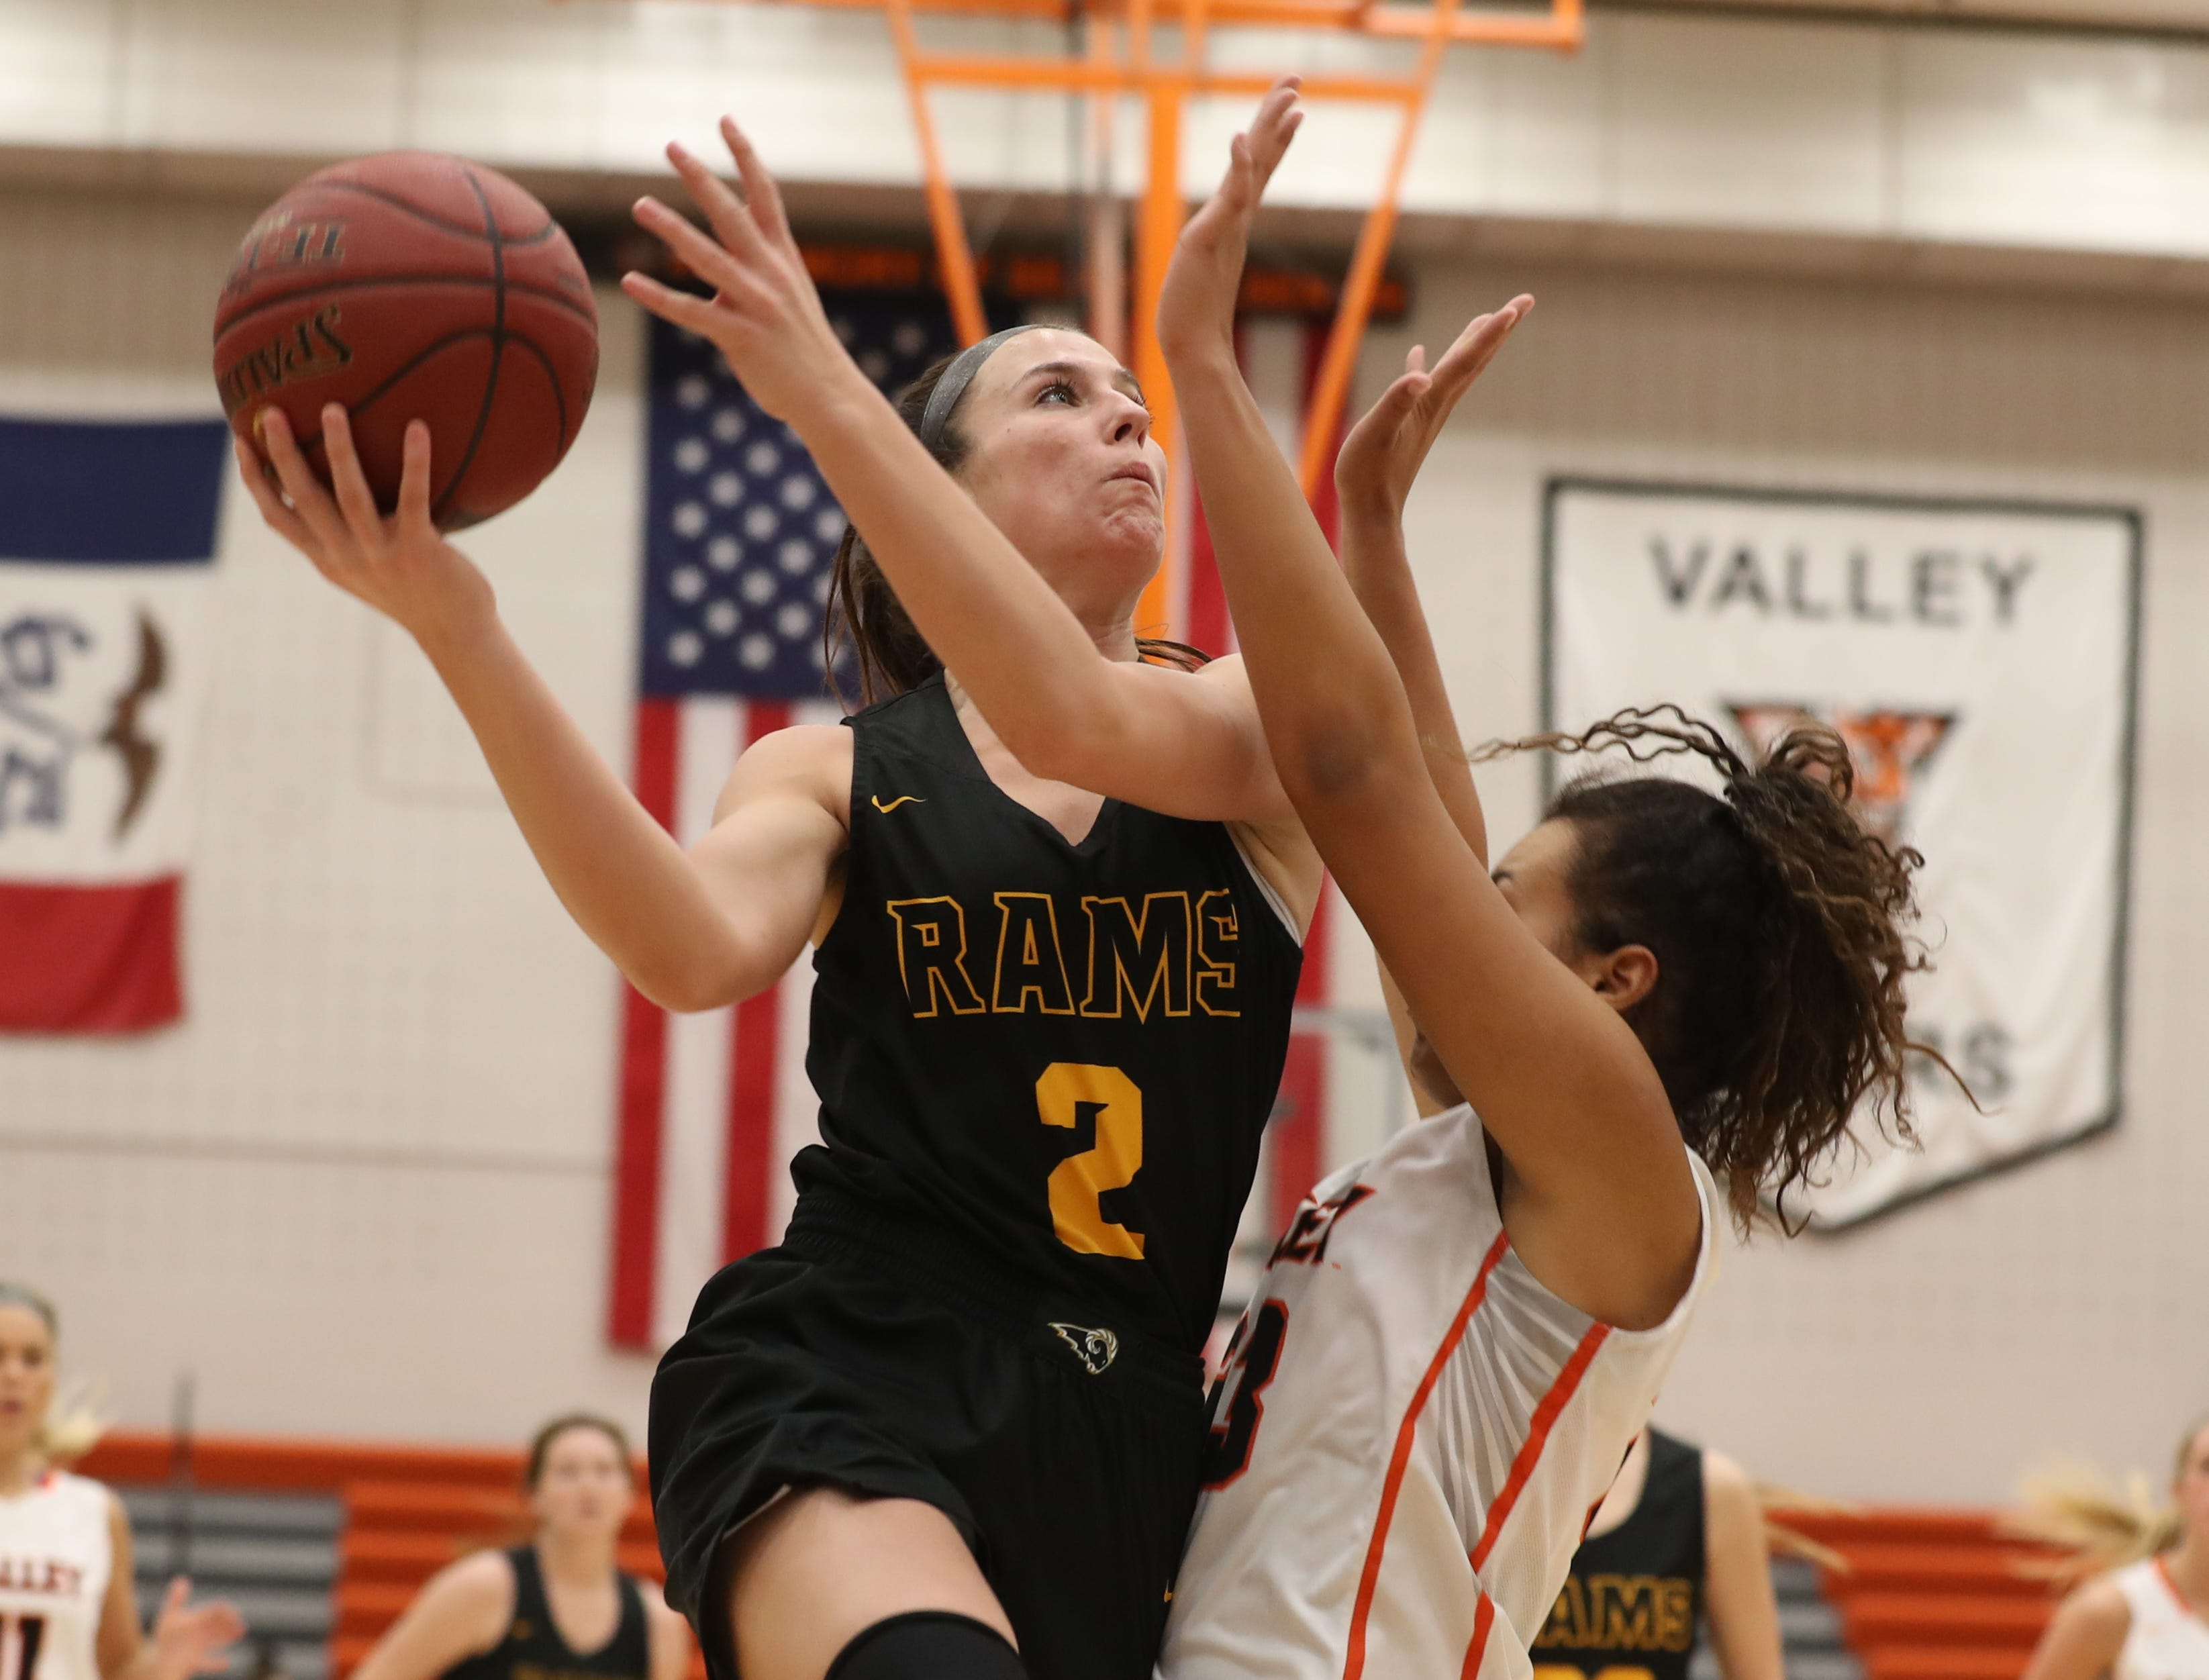 Southeast Polk Rams' Liza Sutten is fouled by Valley Tigers Jasmine Spann during a girls basketball game at Valley High School on Jan. 11, 2019.